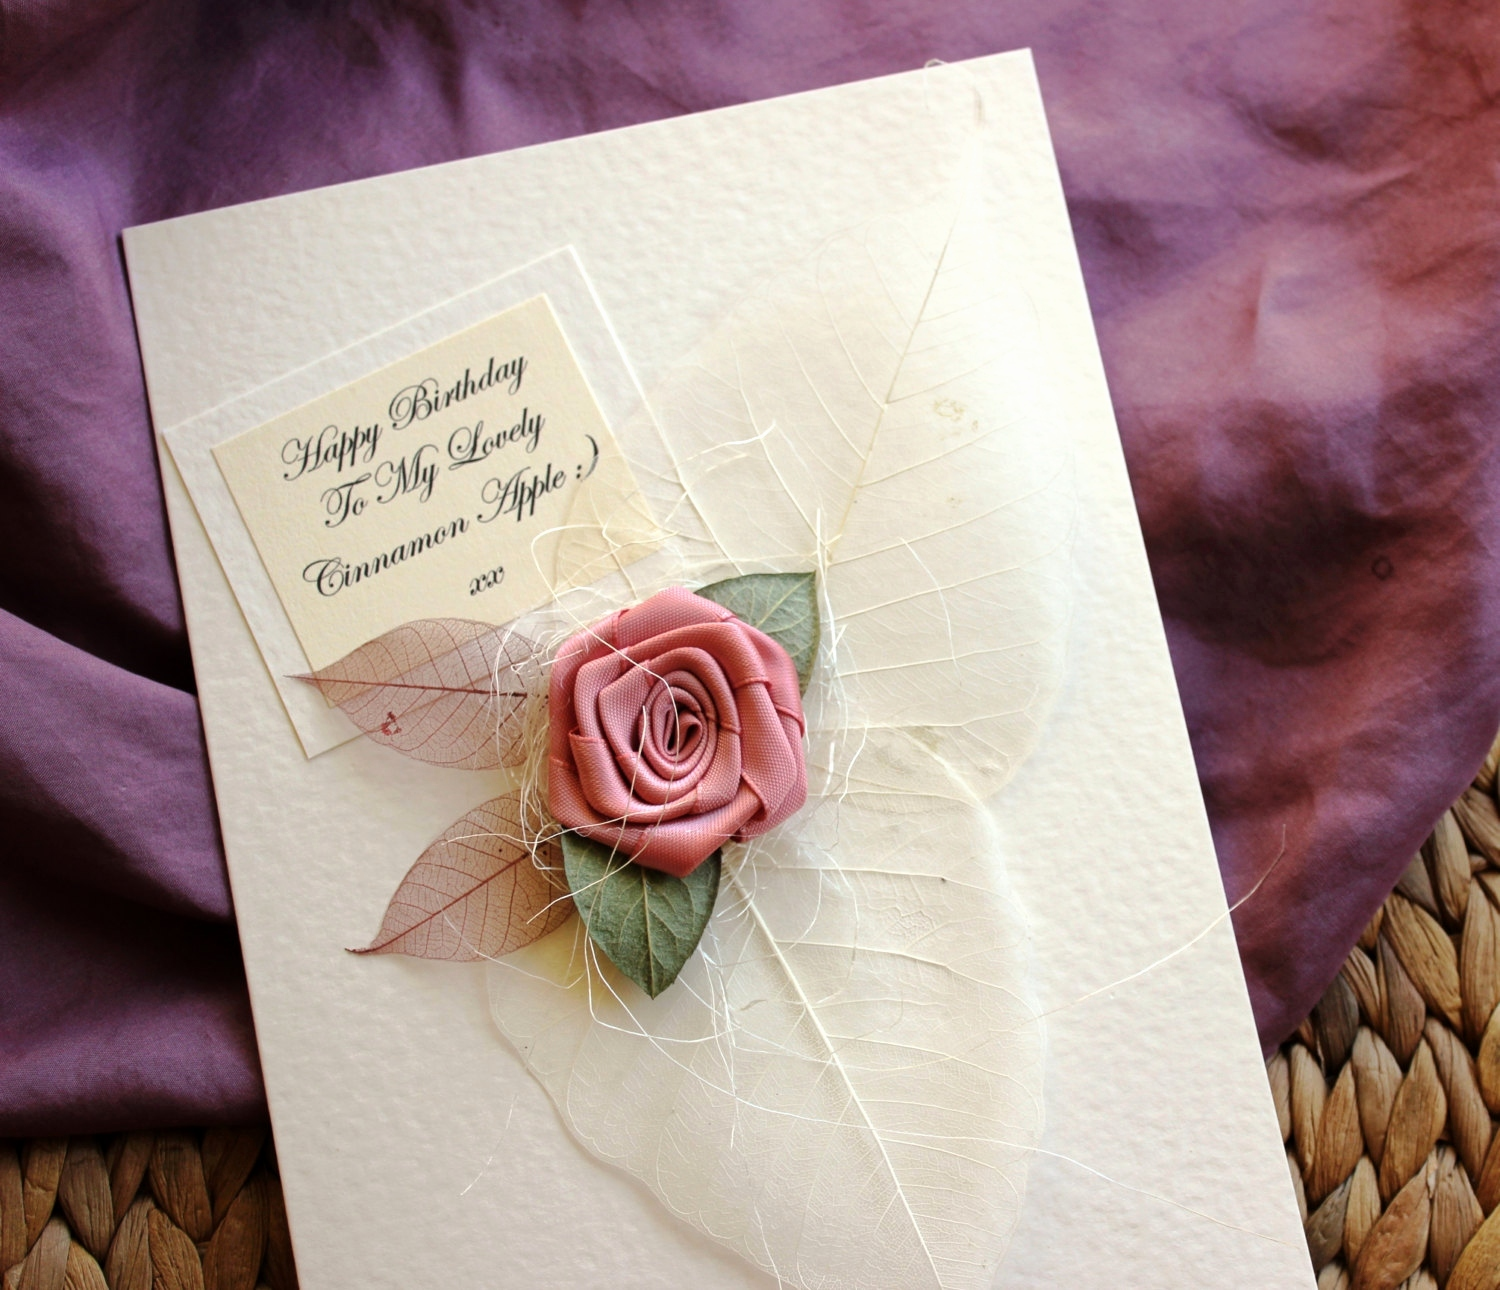 words for 30th birthday card ; birthday-cards-with-wishes-words-fresh-special-friend-30th-birthday-card-fresh-30th-birthday-wishes-of-birthday-cards-with-wishes-words